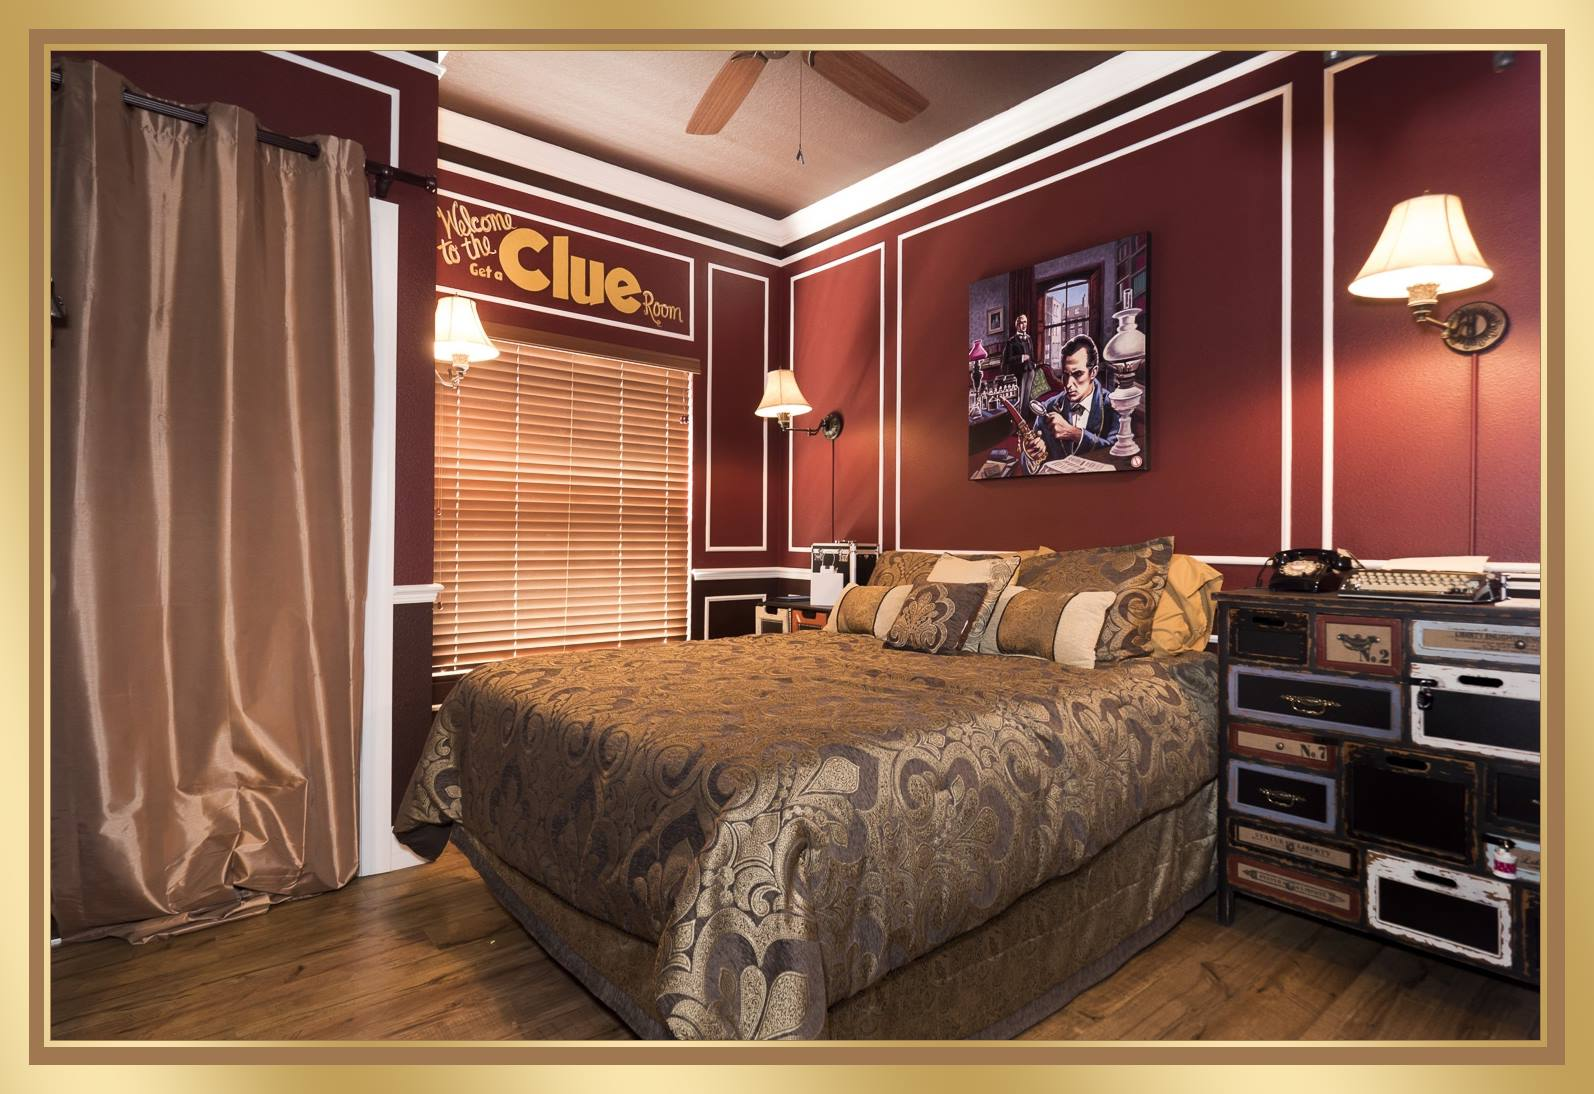 The Get A Clue Escape Room Game Bedroom At The Great Escape Lakeside